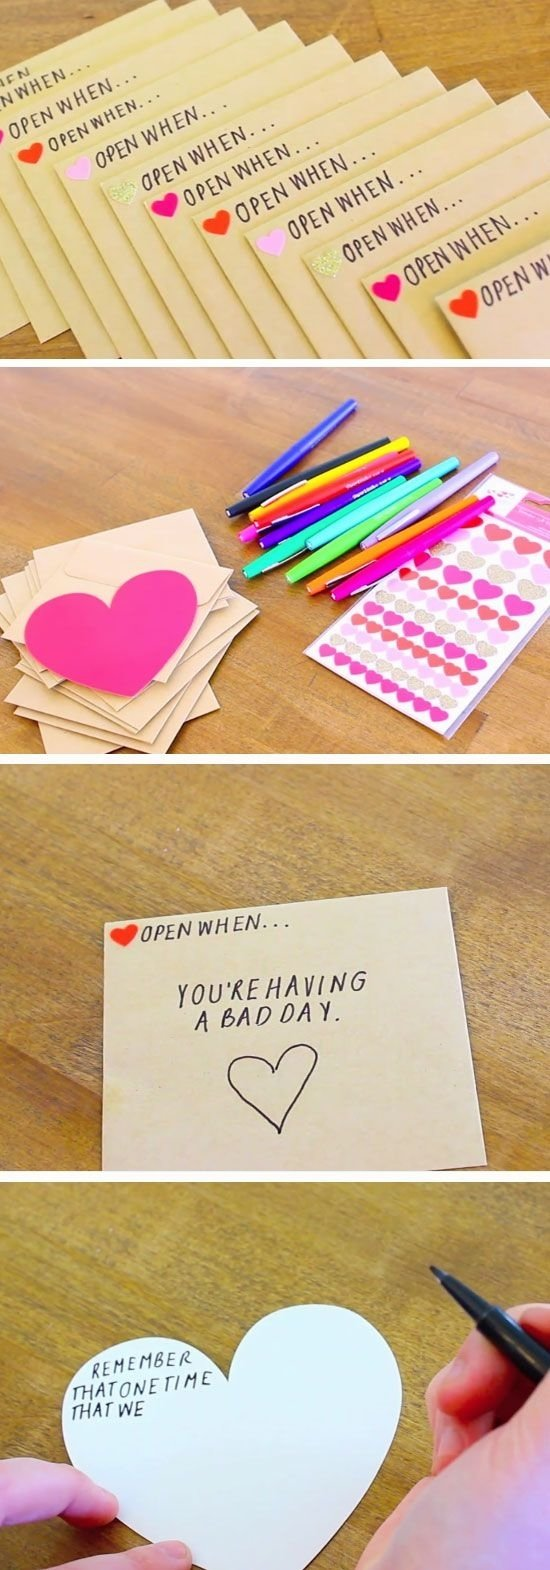 10 Nice Diy Gift Ideas For Boyfriend 45 awesome diy gifts for boyfriend with lots of tutorials 2017 4 2020